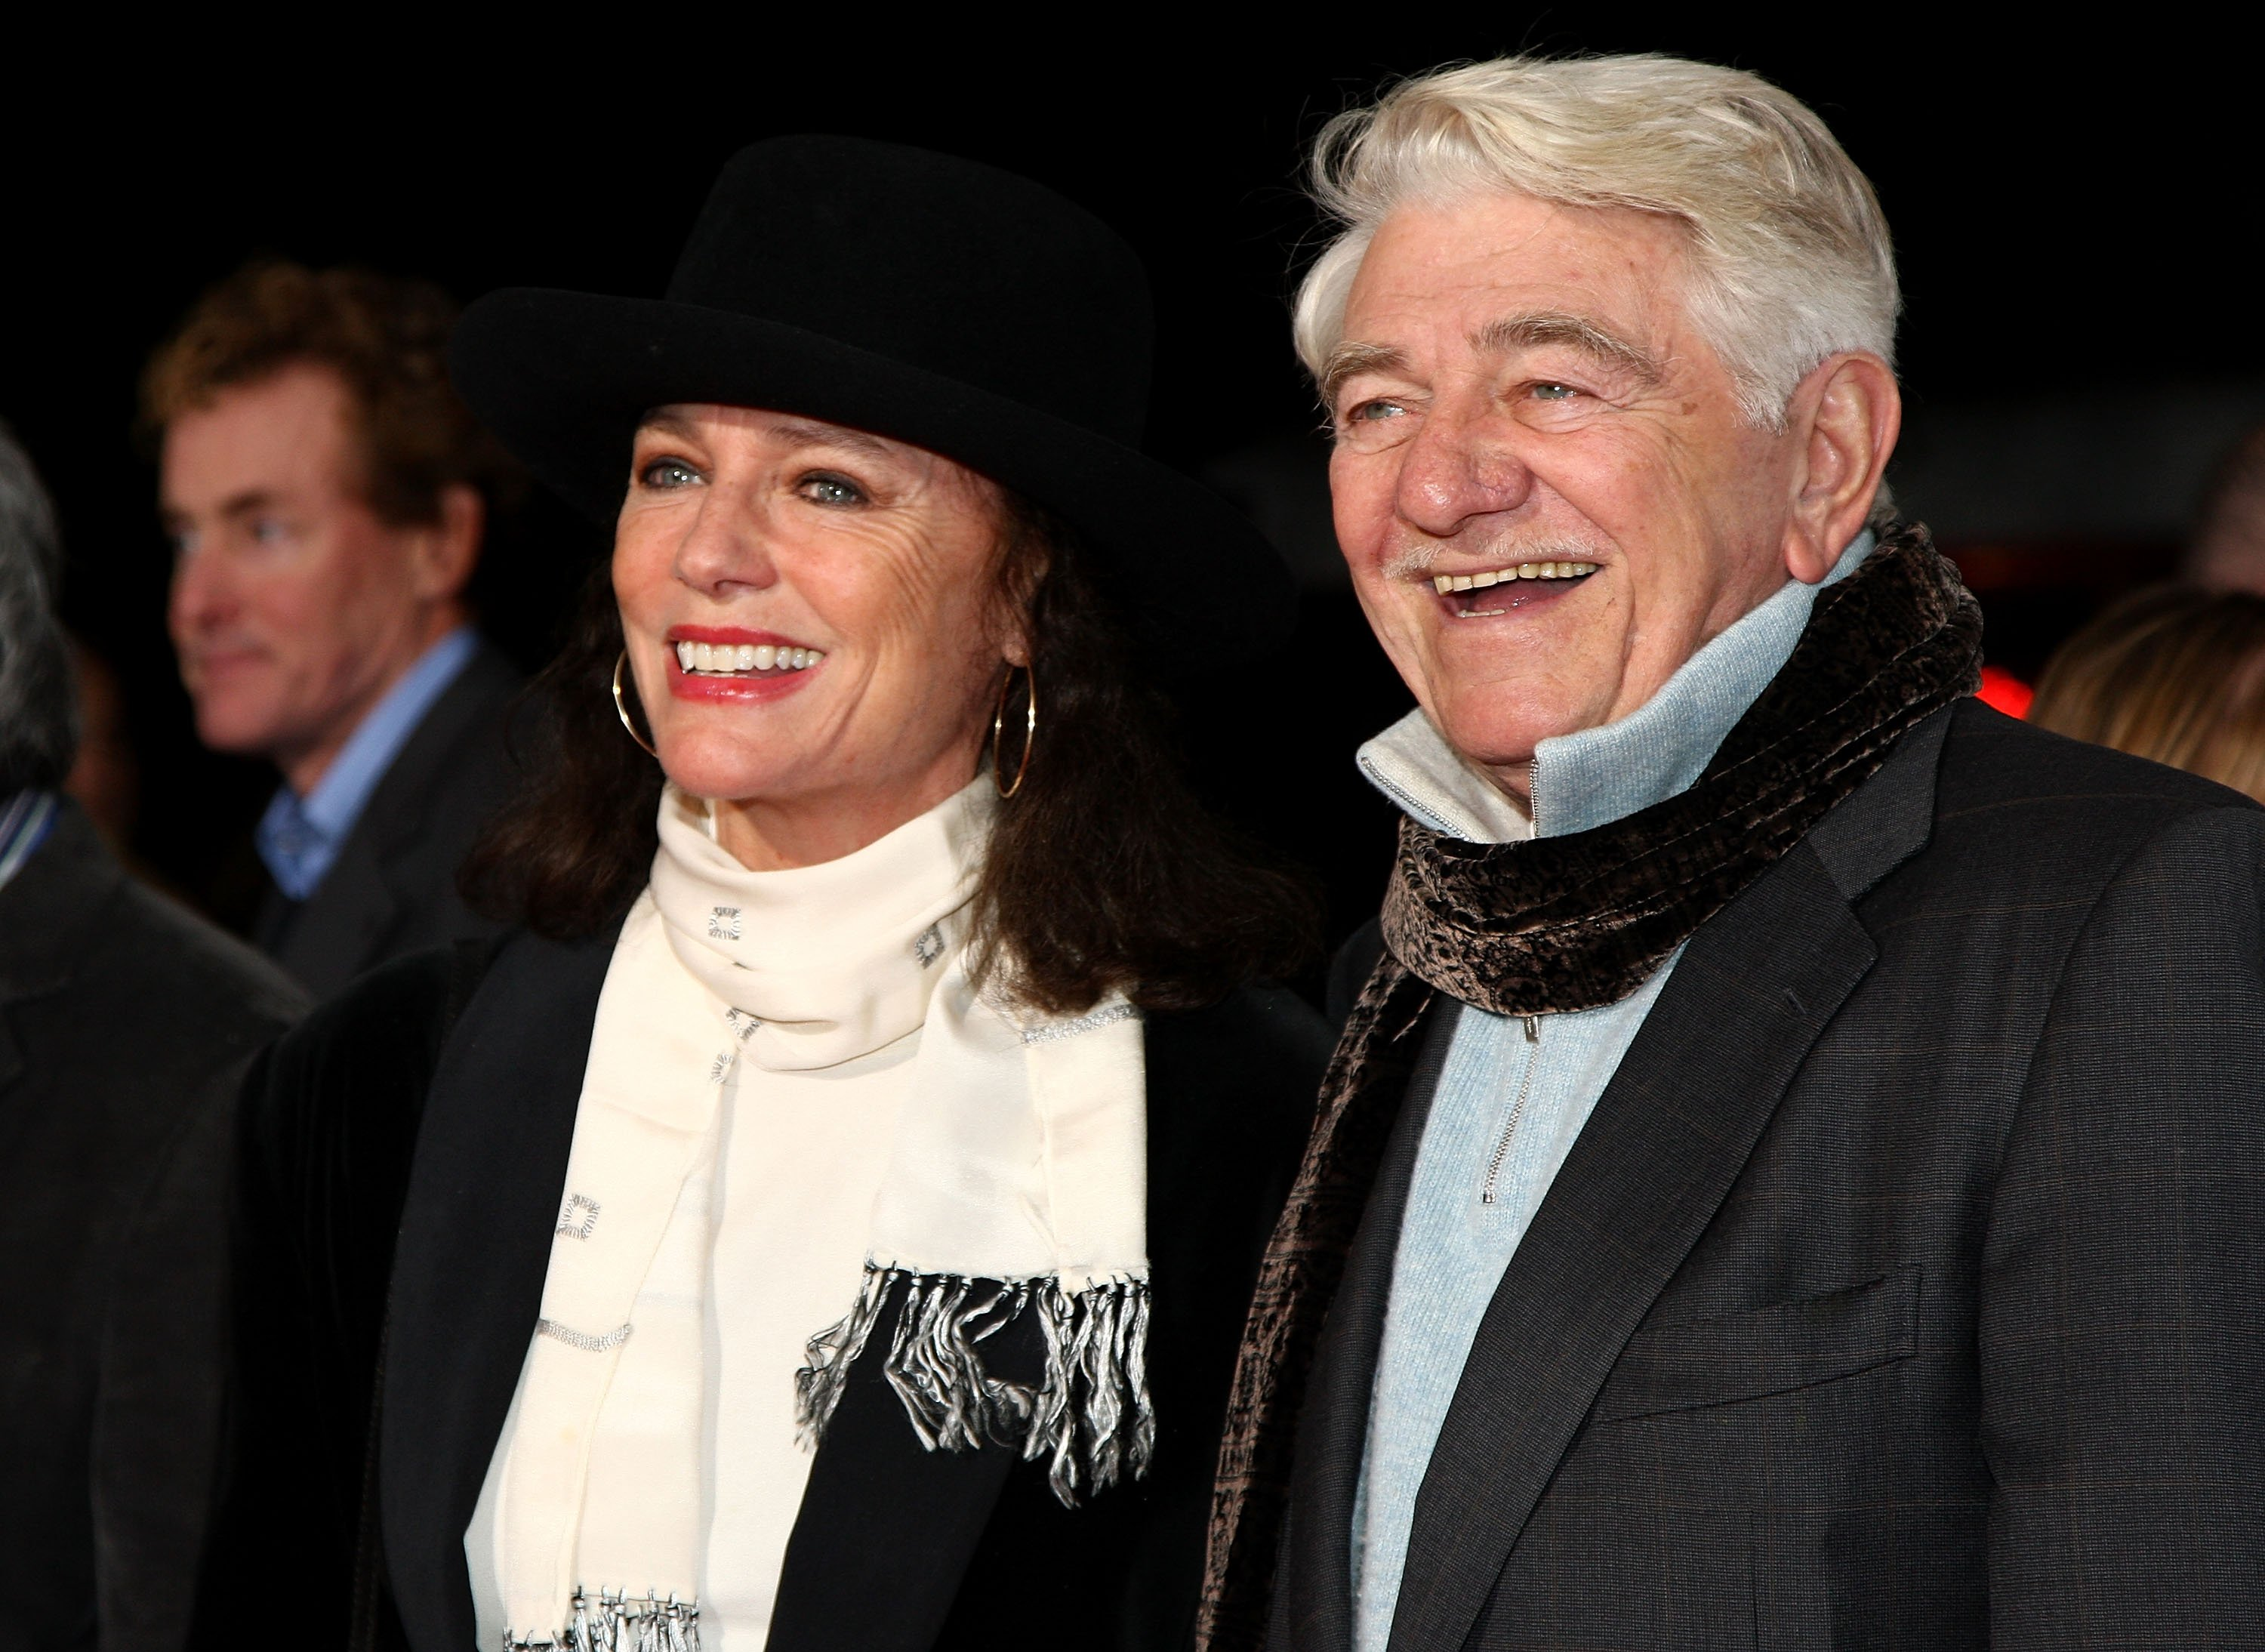 Jacqueline Bisset and Seymour Cassel arrive at Paramount Vantage's Los Angeles premiere of 'Revolutionary Road' on December 15, 2008 in Westwood, California. Photo: Getty Images/GlobalImagesUkraine